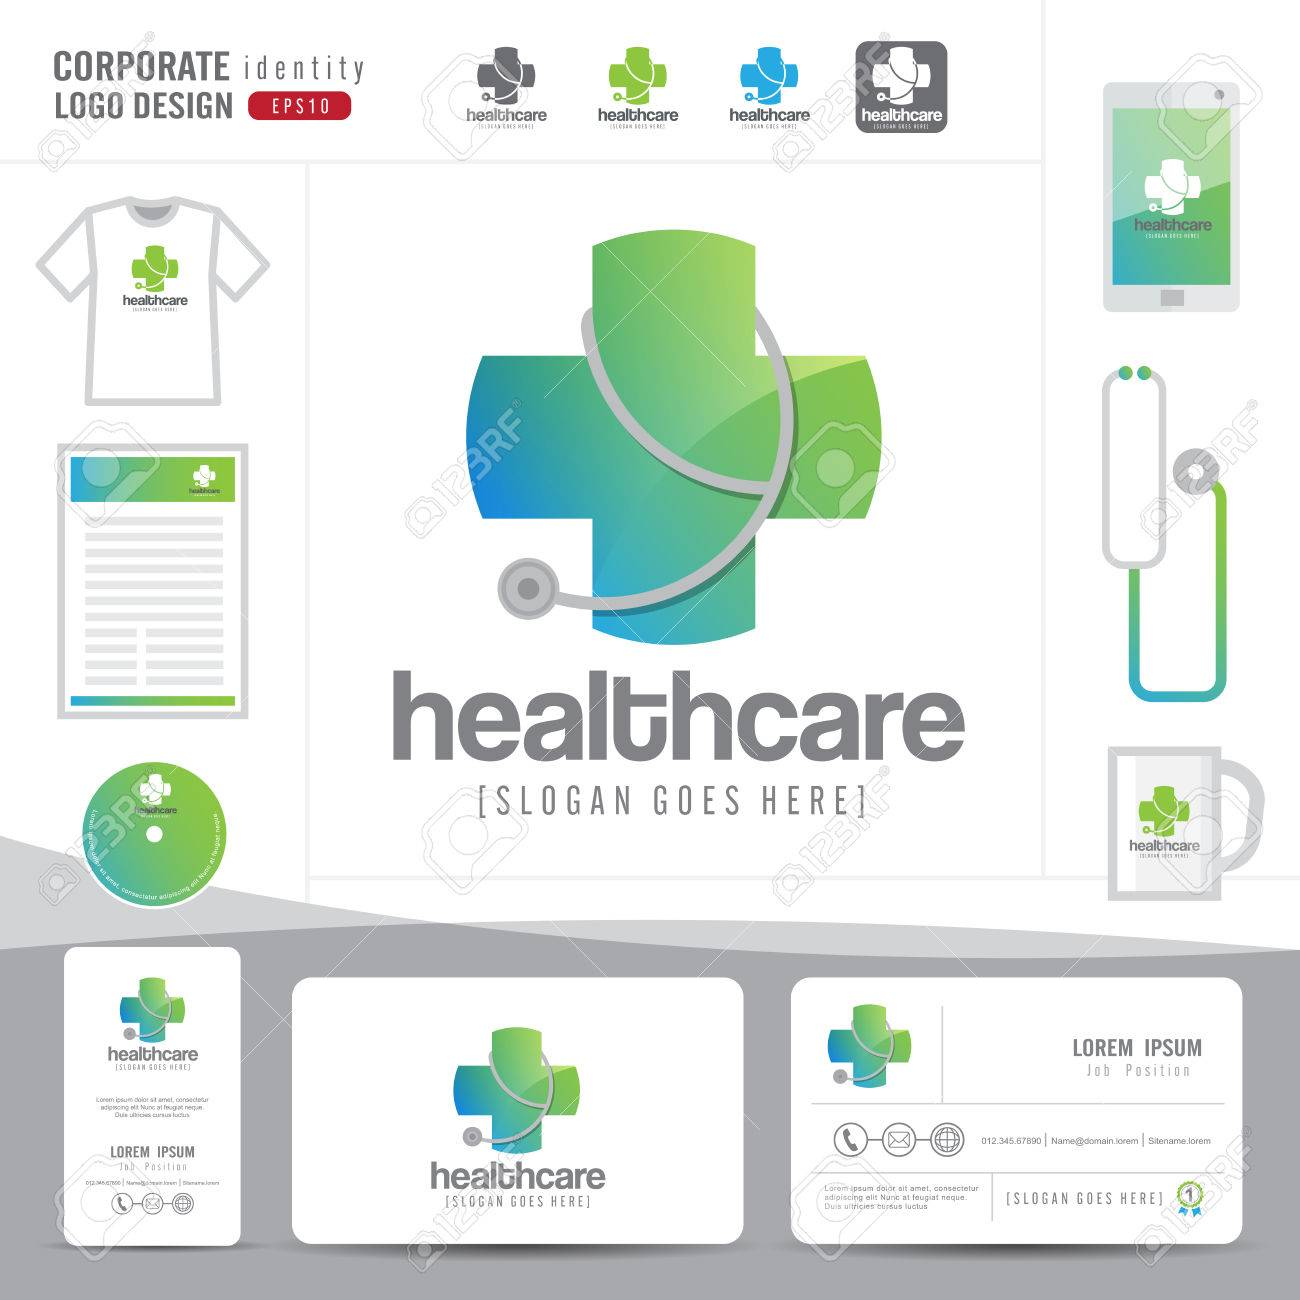 Logo design medical healthcare or hospital and business card banco de imagens logo design medical healthcare or hospital and business card template with clean and modern flat patterncorporate identityvector reheart Gallery